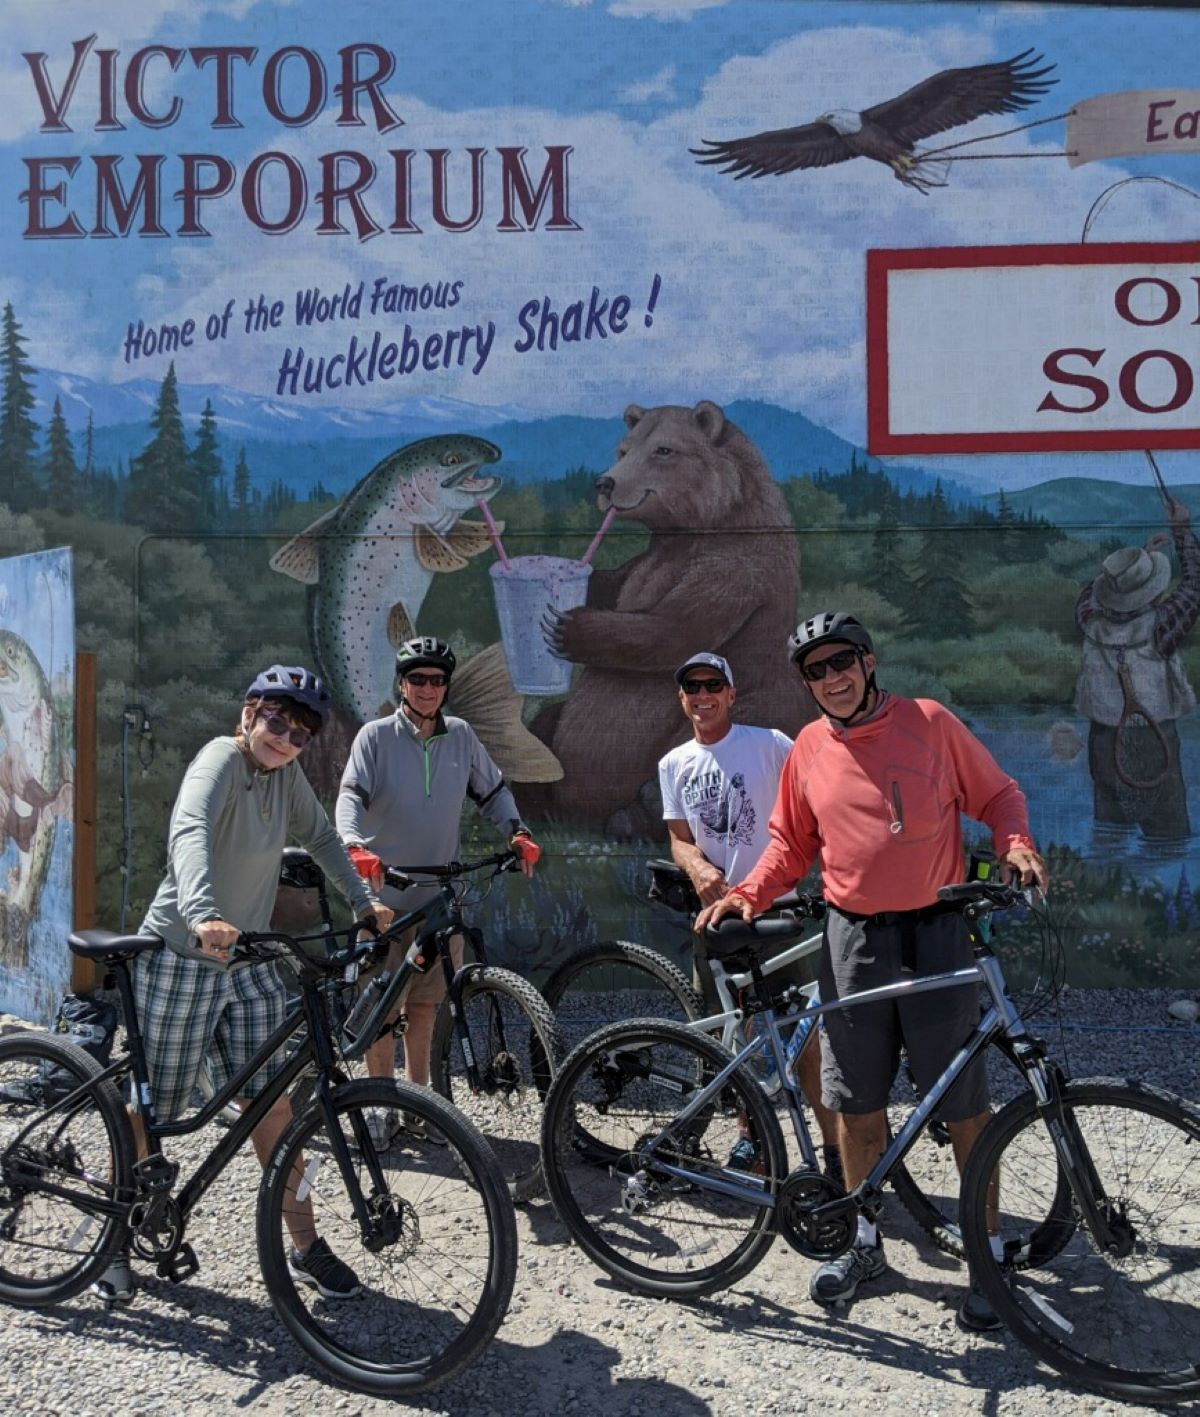 Biking in the Teton Valley